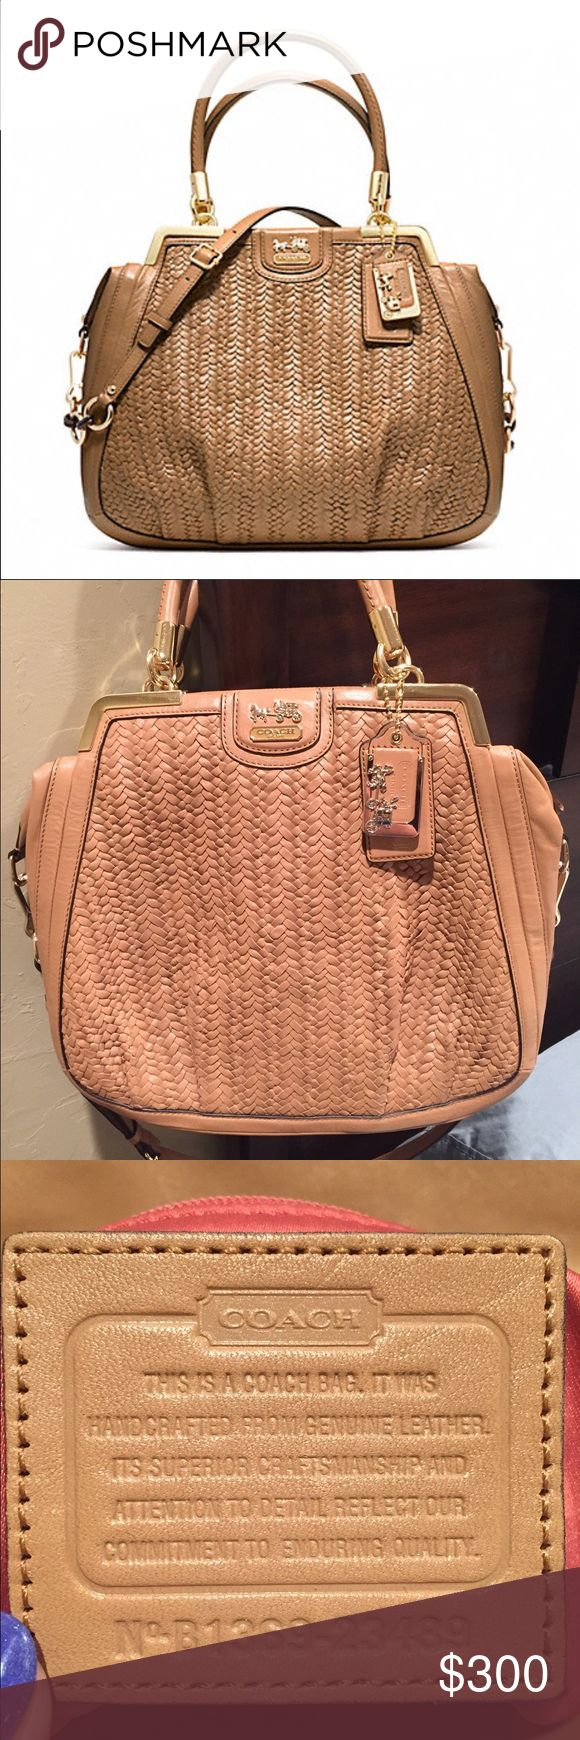 Coach Madison Pinnacle Woven Lilly Satchel This is a beautiful Coach Satchel that was only carried once or twice. This was a gift that was given to impress me, but just wasn't my style. The color is tan (Coach called it Suntan) with a dusty rose interior lining. All woven leather is intact and the interior is not stained or marked. It's in perfect condition! This bag retailed for $1,200 plus tax. Let me know if you have any questions. I'm open to offers. Thank you! Coach Bags Satchels